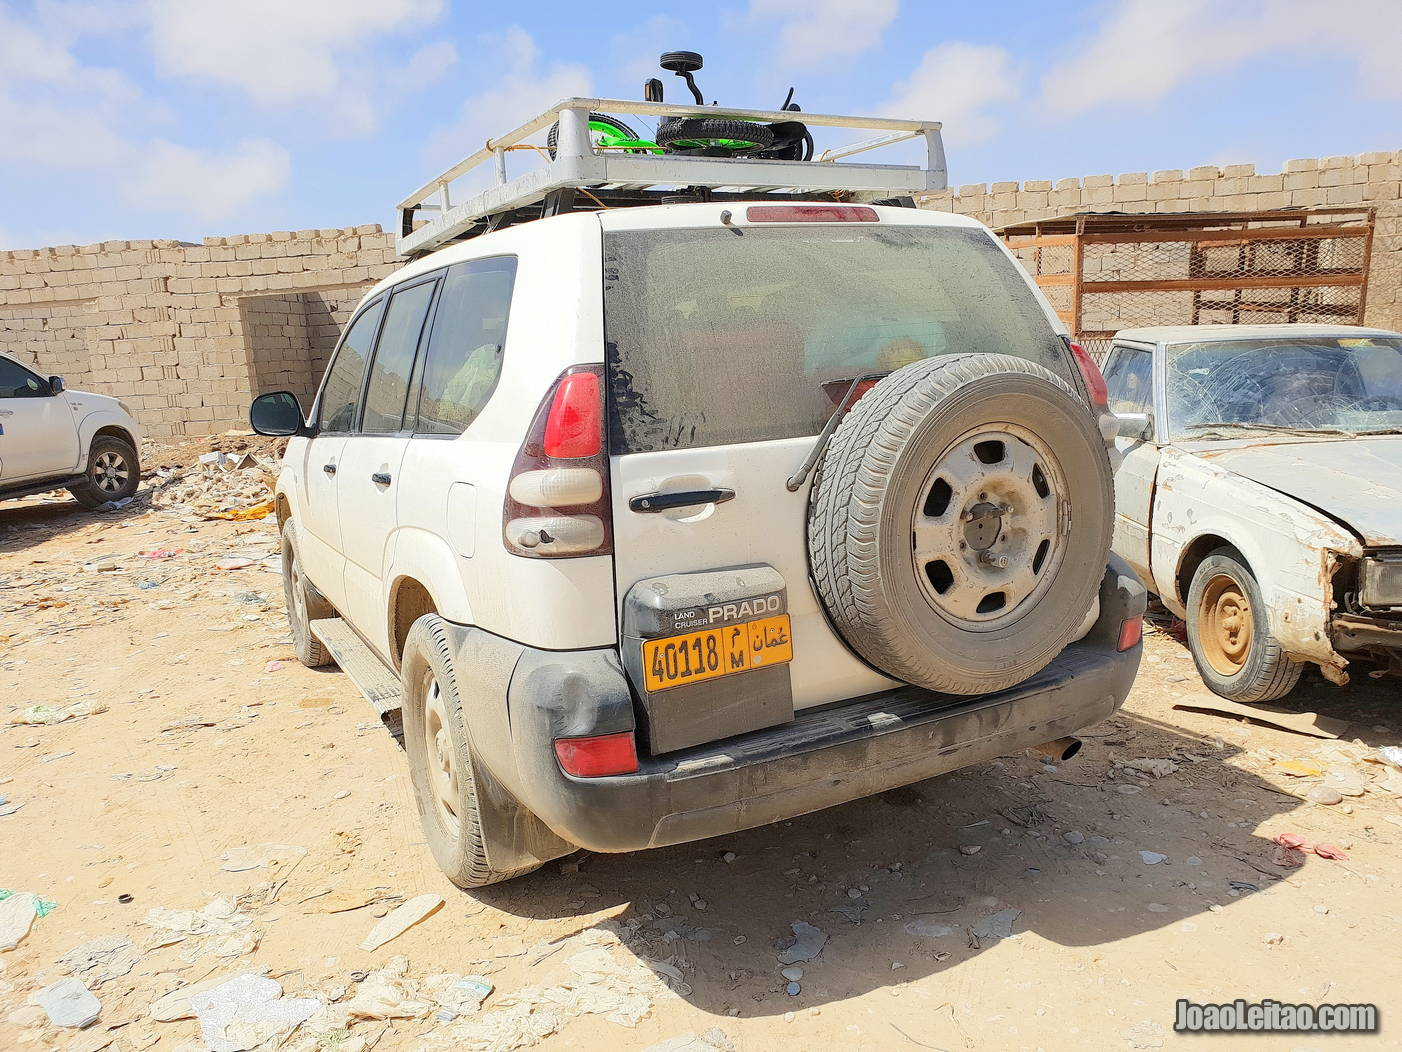 TRANSPORTATION IN YEMEN